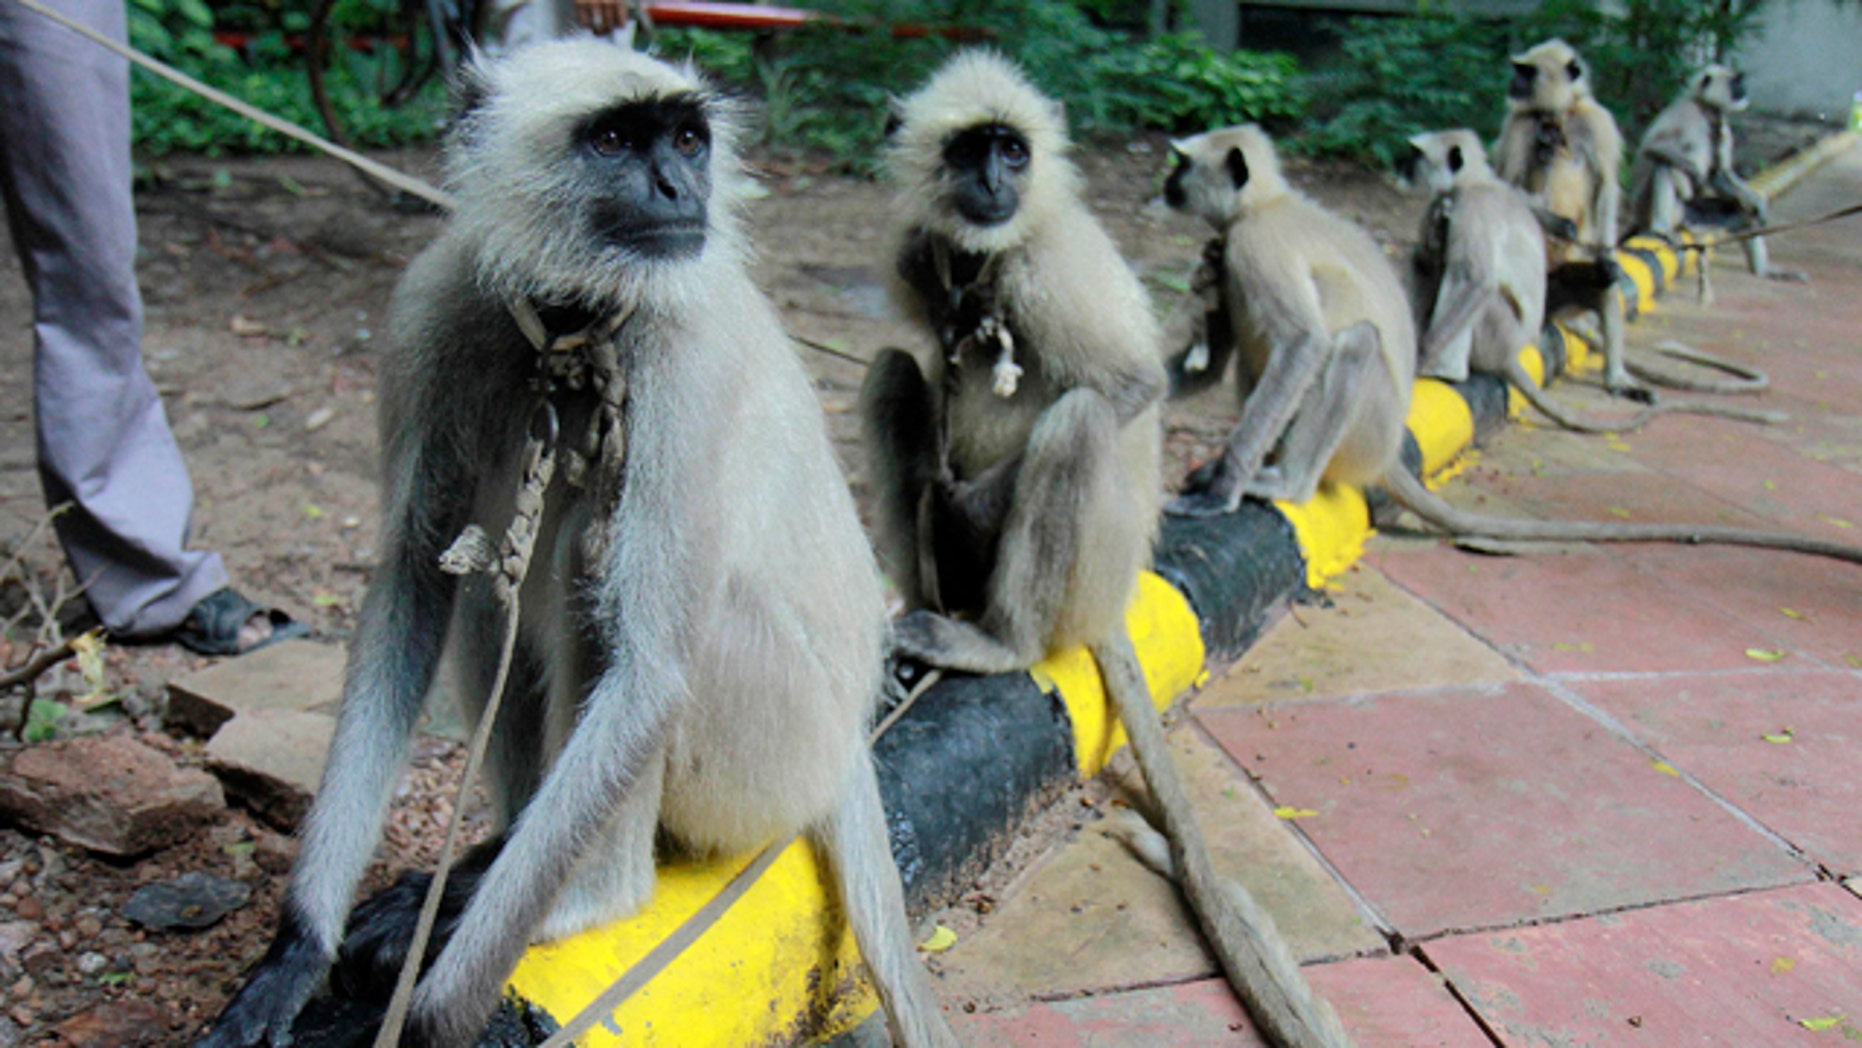 In this Wednesday, Sept. 22, 2010 photo, langurs stand on leash held by their owners in front of the Commonwealth Games headquarters in New Delhi. Games officials and civic authorities have deployed langurs, a particularly ferocious breed of apes, at various games venues to keep away monkeys known to create nuisance and also attack humans.